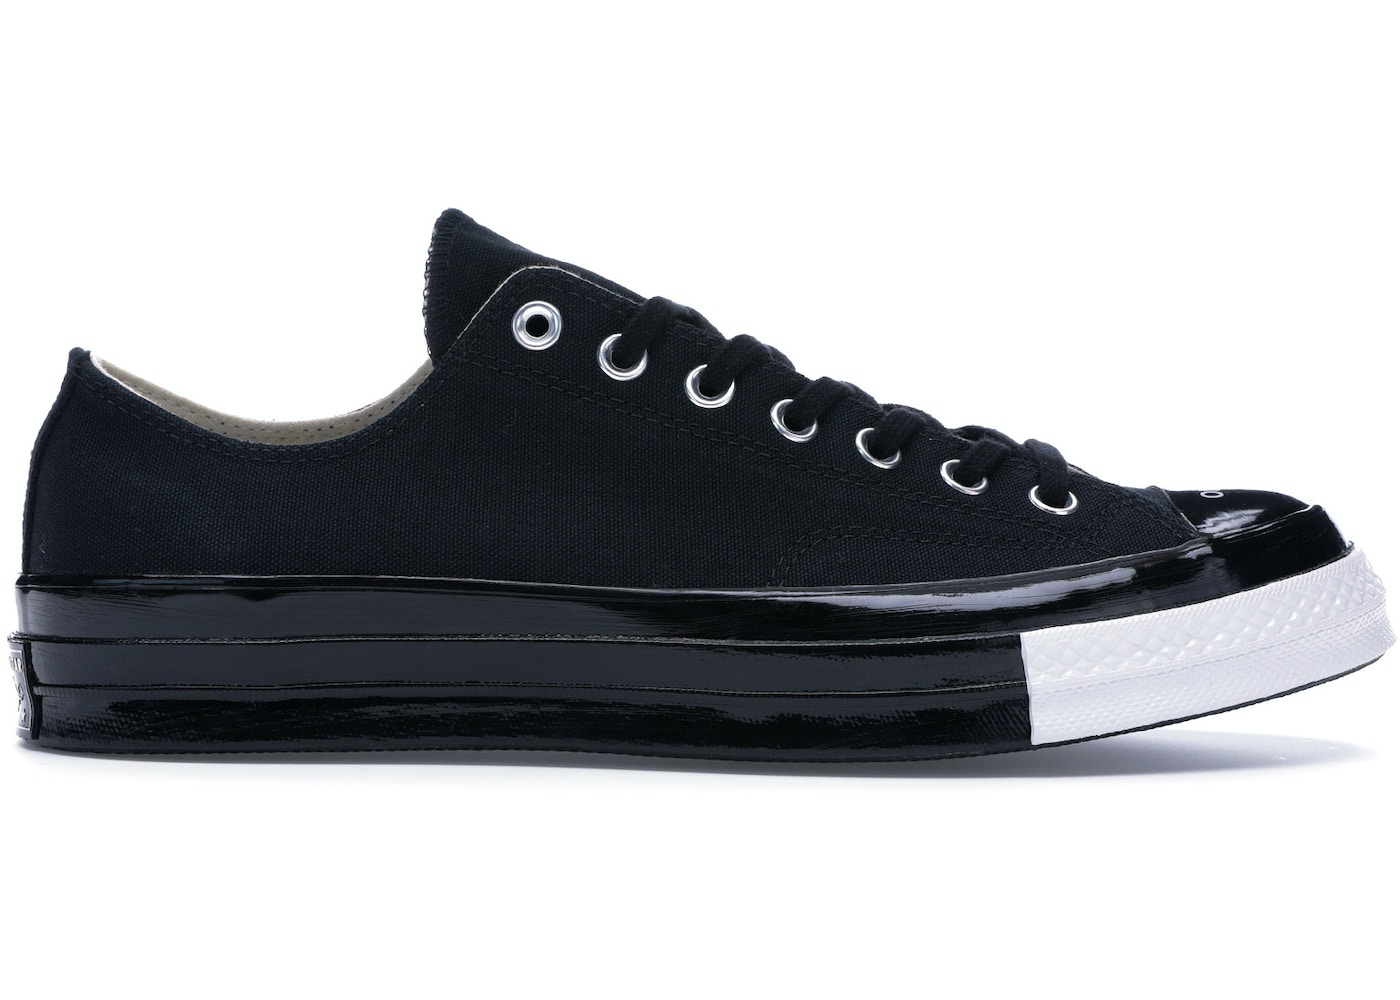 c8af973846b735 Converse Chuck Taylor All-Star 70s Ox Undercover Black - 163010C15